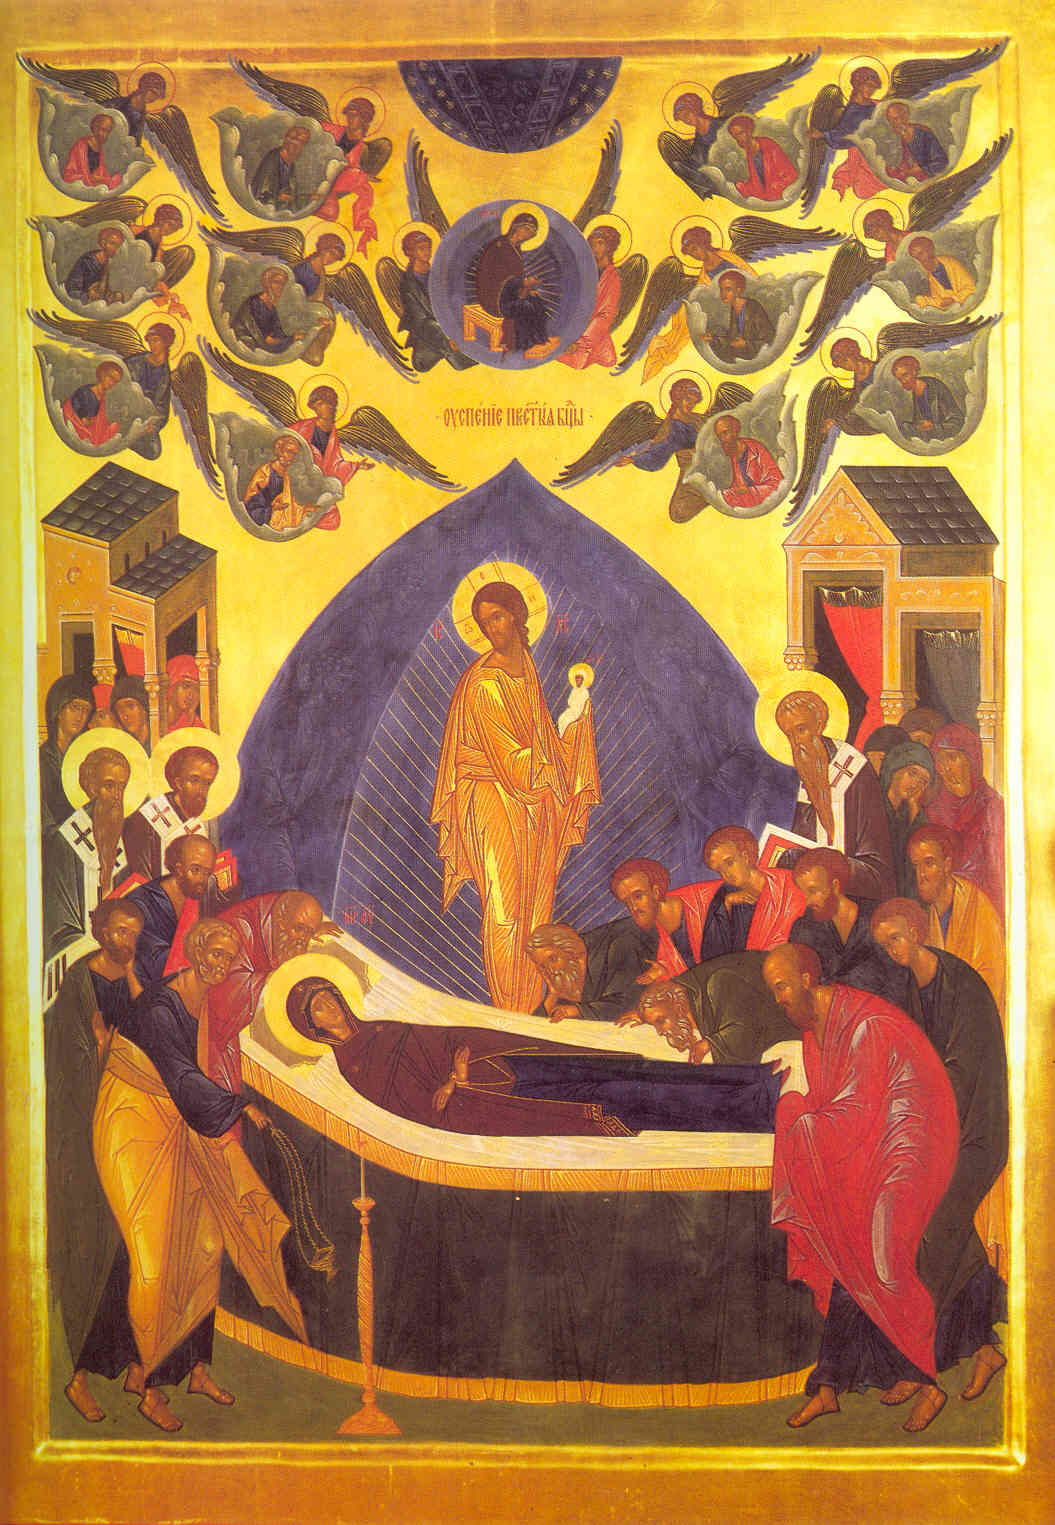 Aug 18; Tenth Sunday after Pentecost, Octoechos Tone 1; Post-feast of the Dormition; Holy Martyrs Florus and Laurus (313-24)